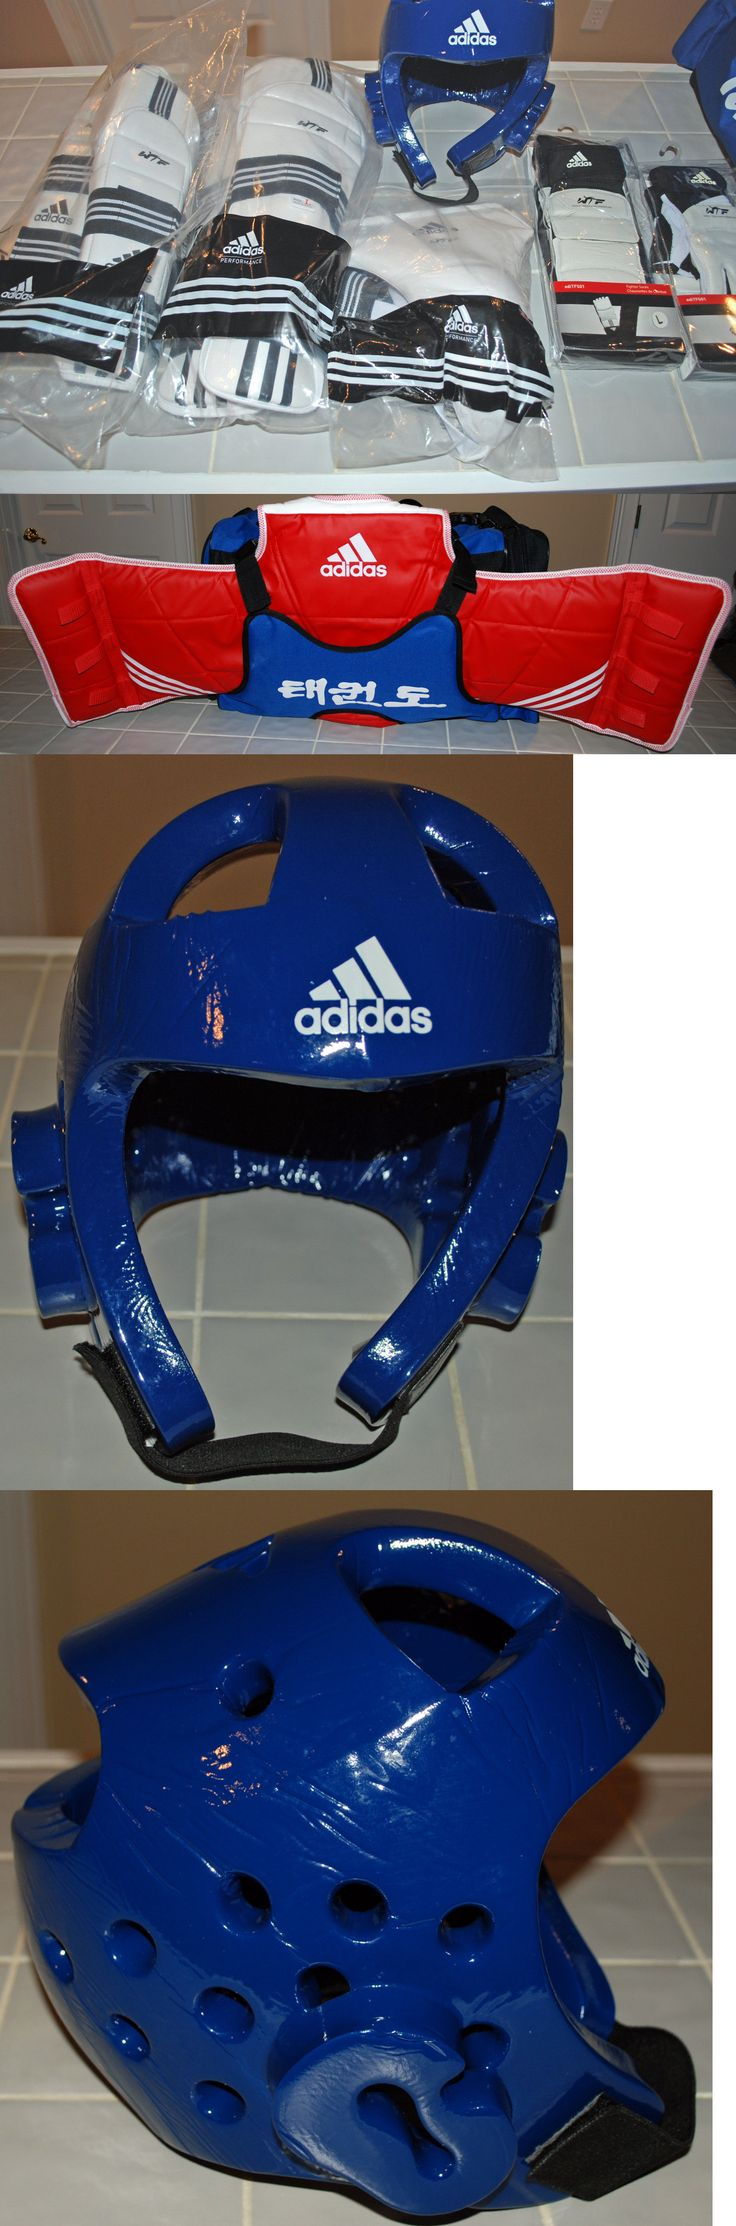 Other Combat Sport Protection 179783: Adidas Taekwondo Sparring Gear - Authentic - Complete Set - Wtf Approved + Bag -> BUY IT NOW ONLY: $399.95 on eBay!